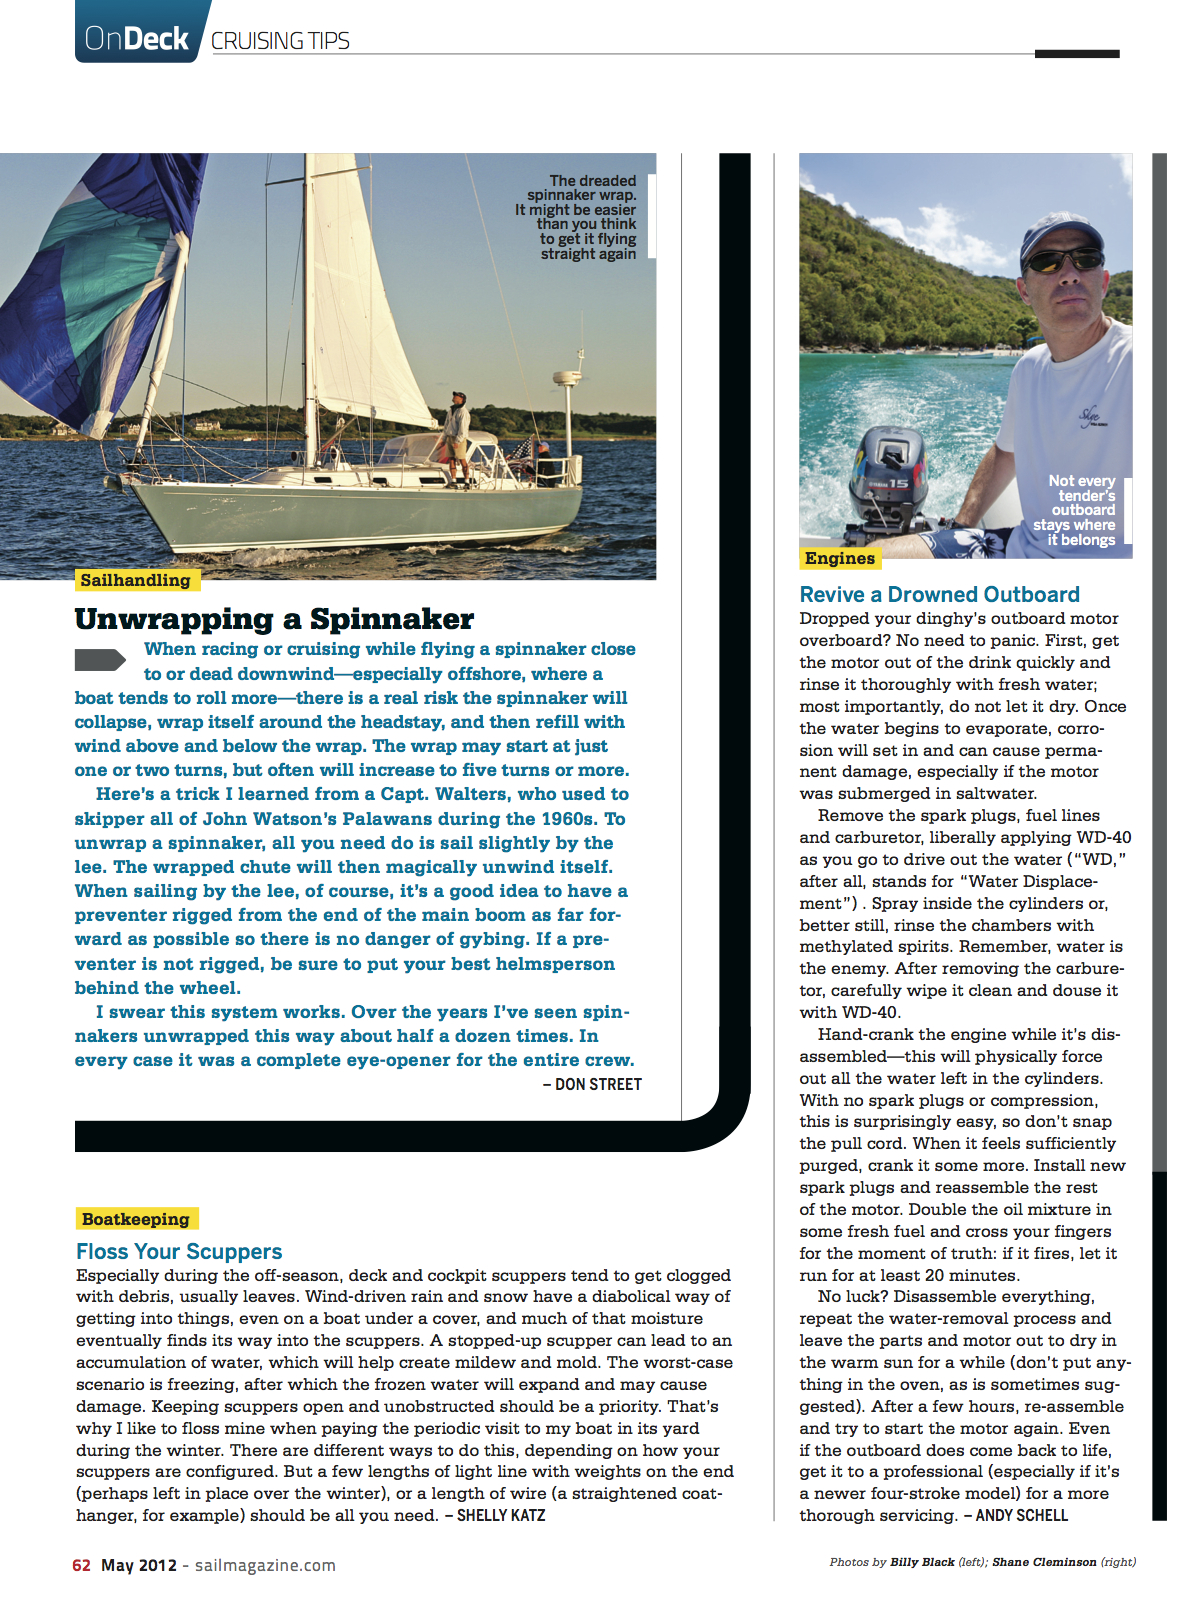 SAIL: Rescue a Drowned Outboard